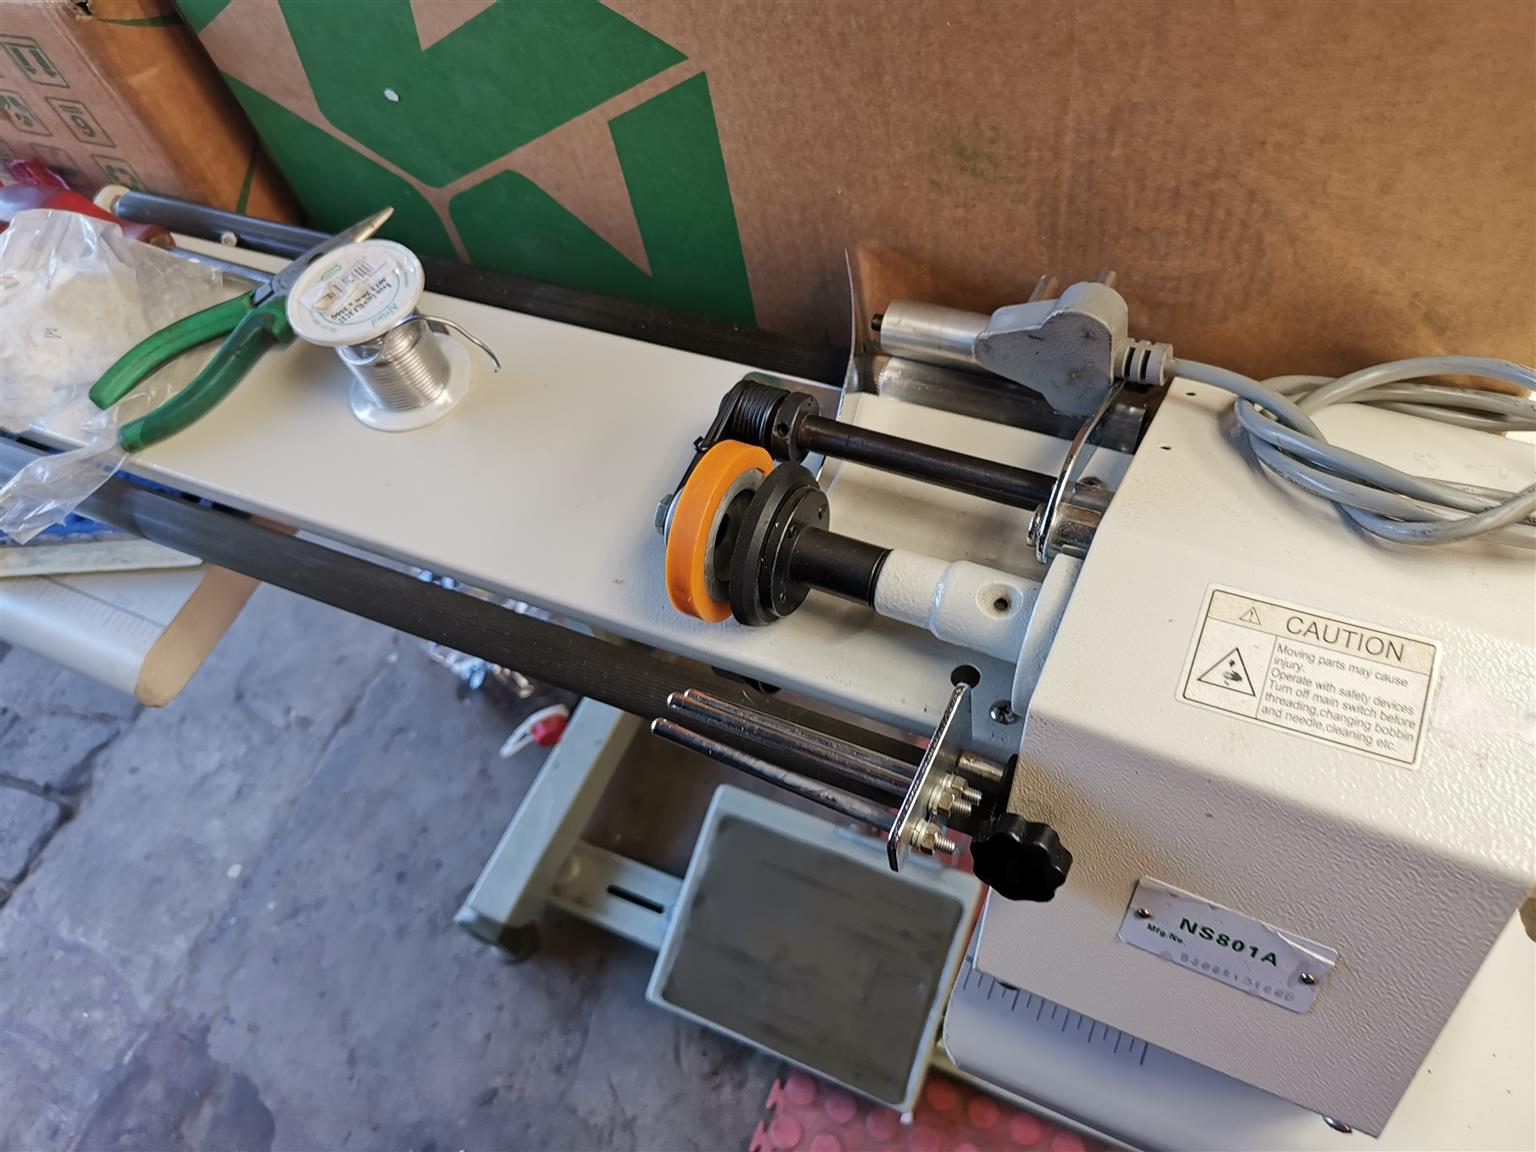 Industry sawing machine